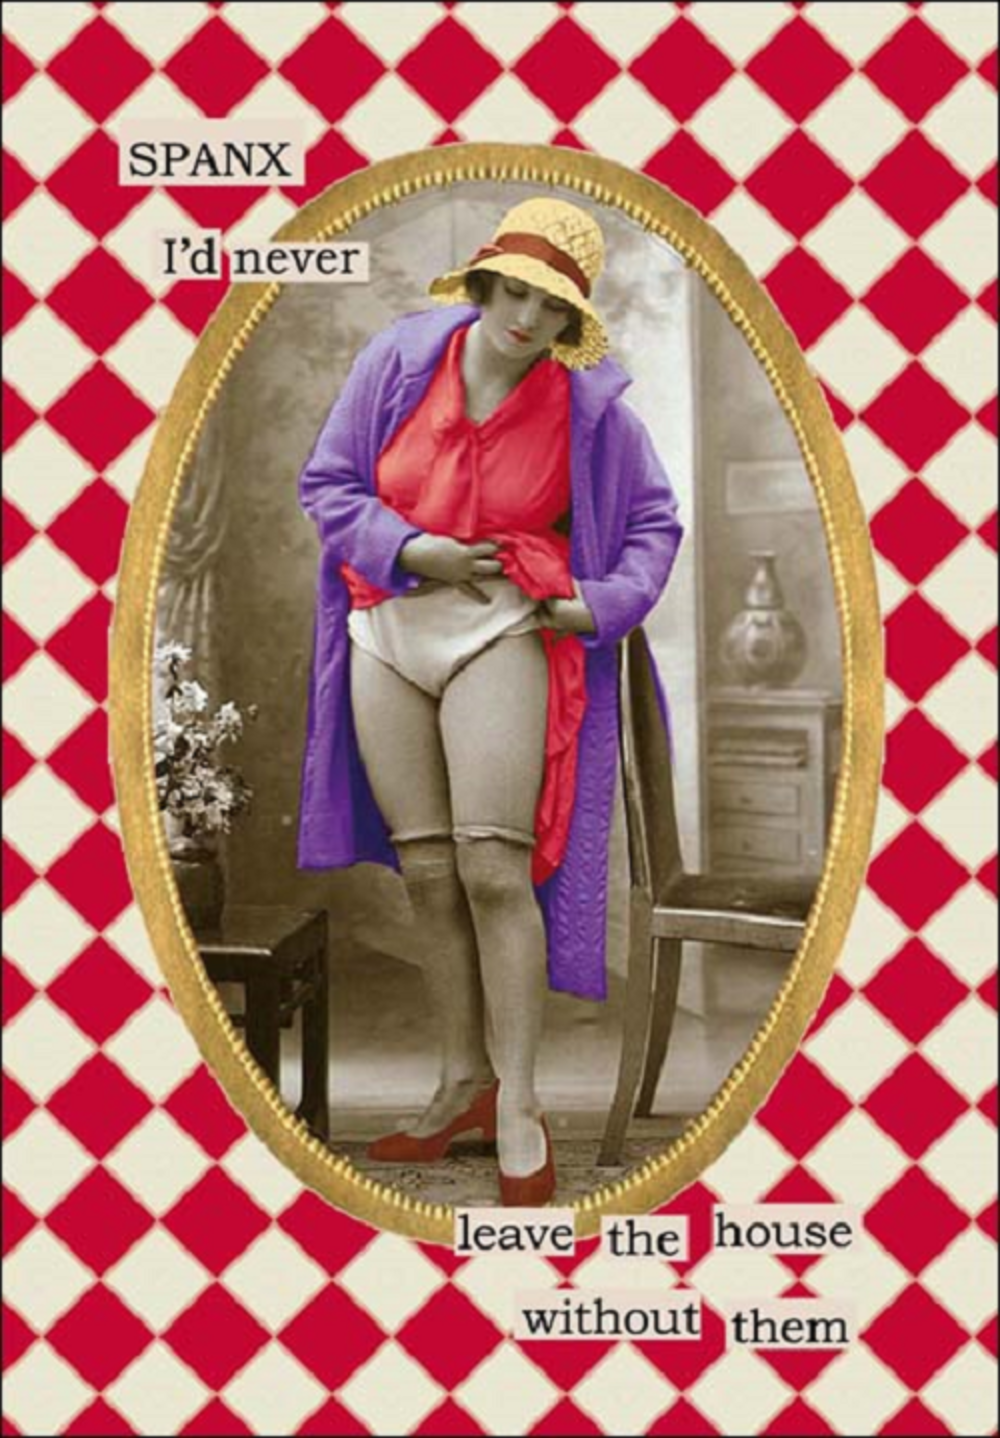 Never Leave Without Spanx Greeting Card Blank Inside